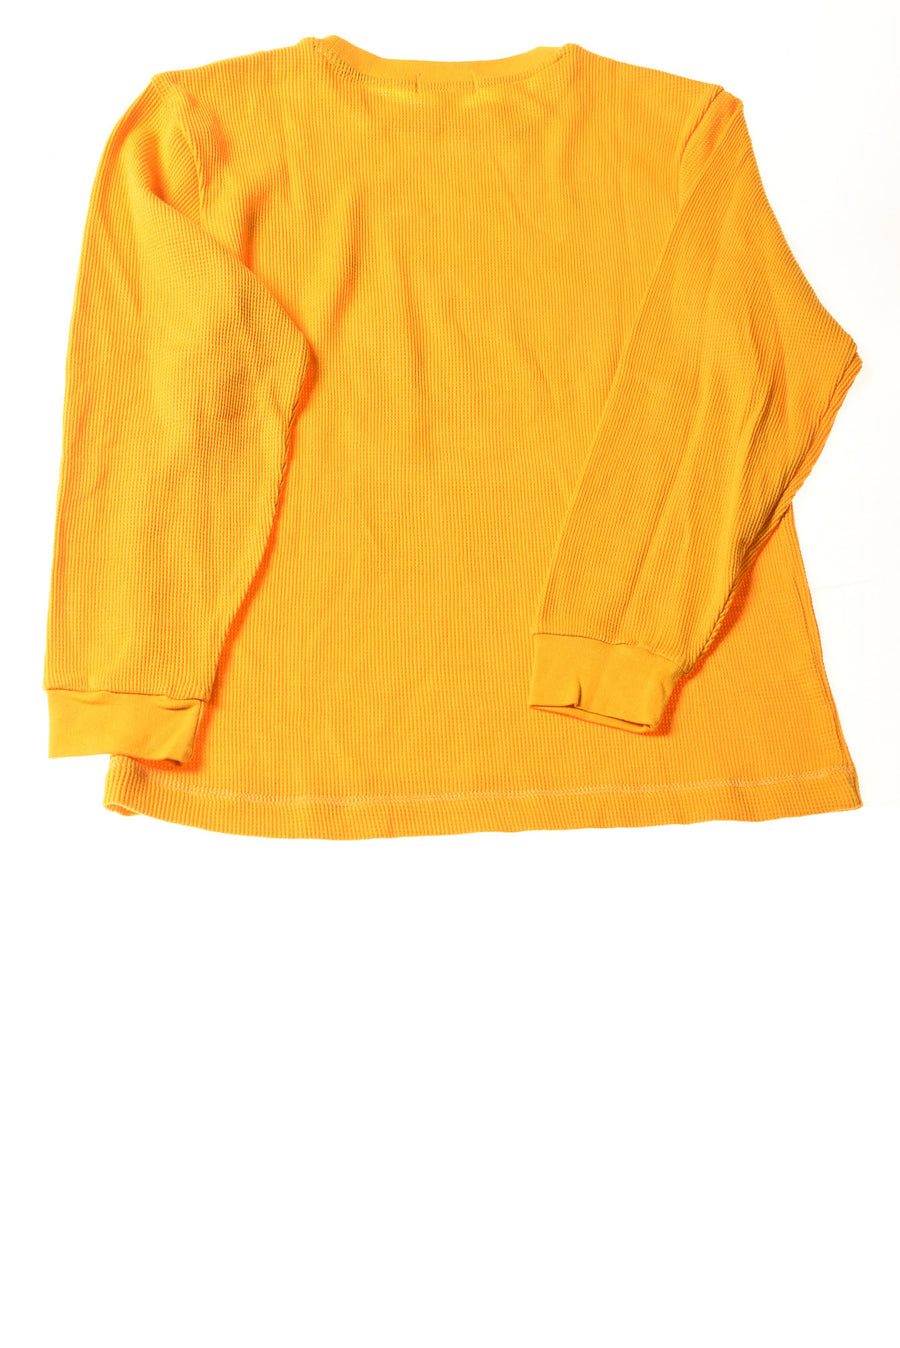 NEW Old Navy Boy's Shirt 8 Yellow